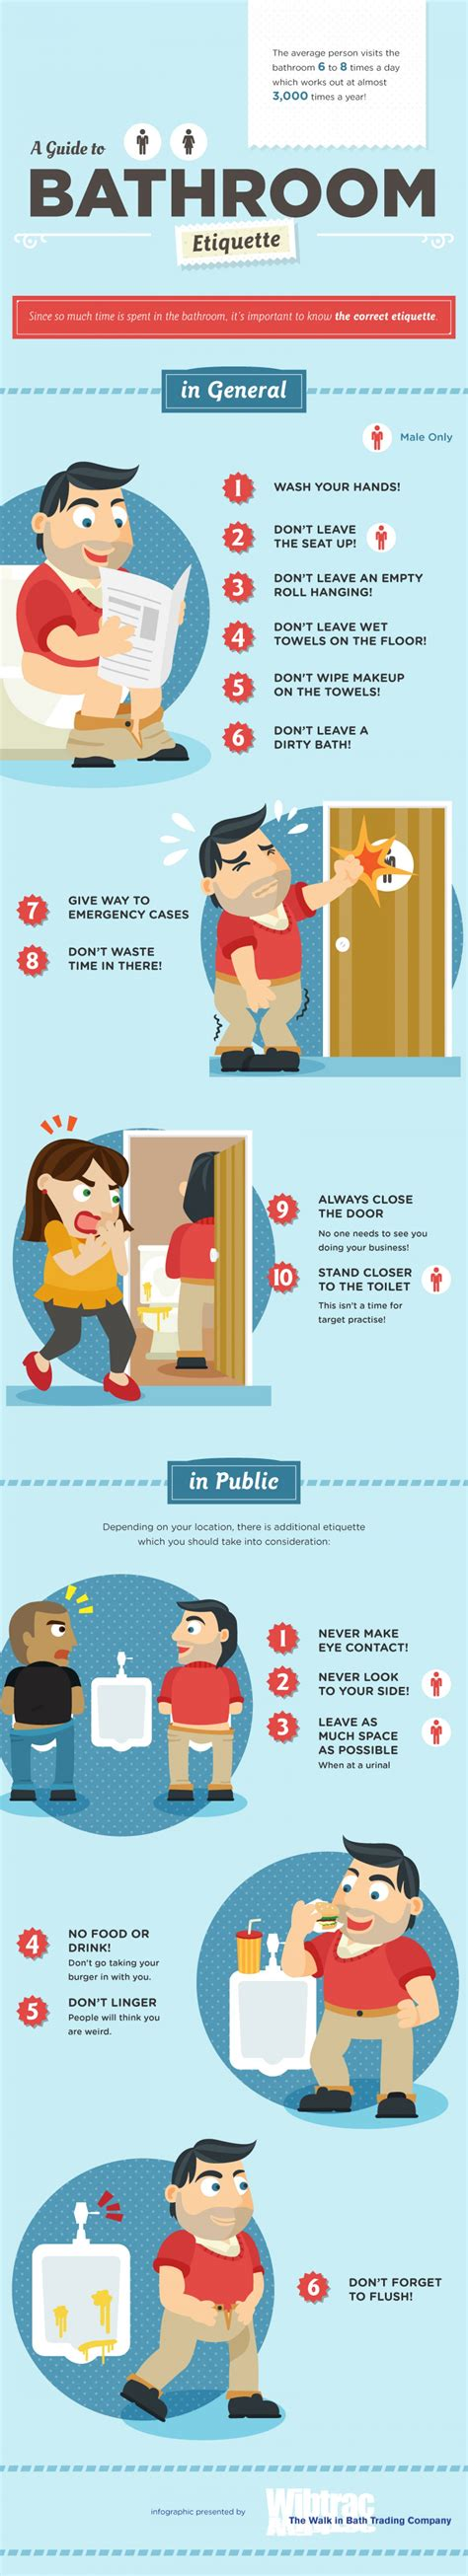 public bathroom etiquette a guide to bathroom etiquette visual ly